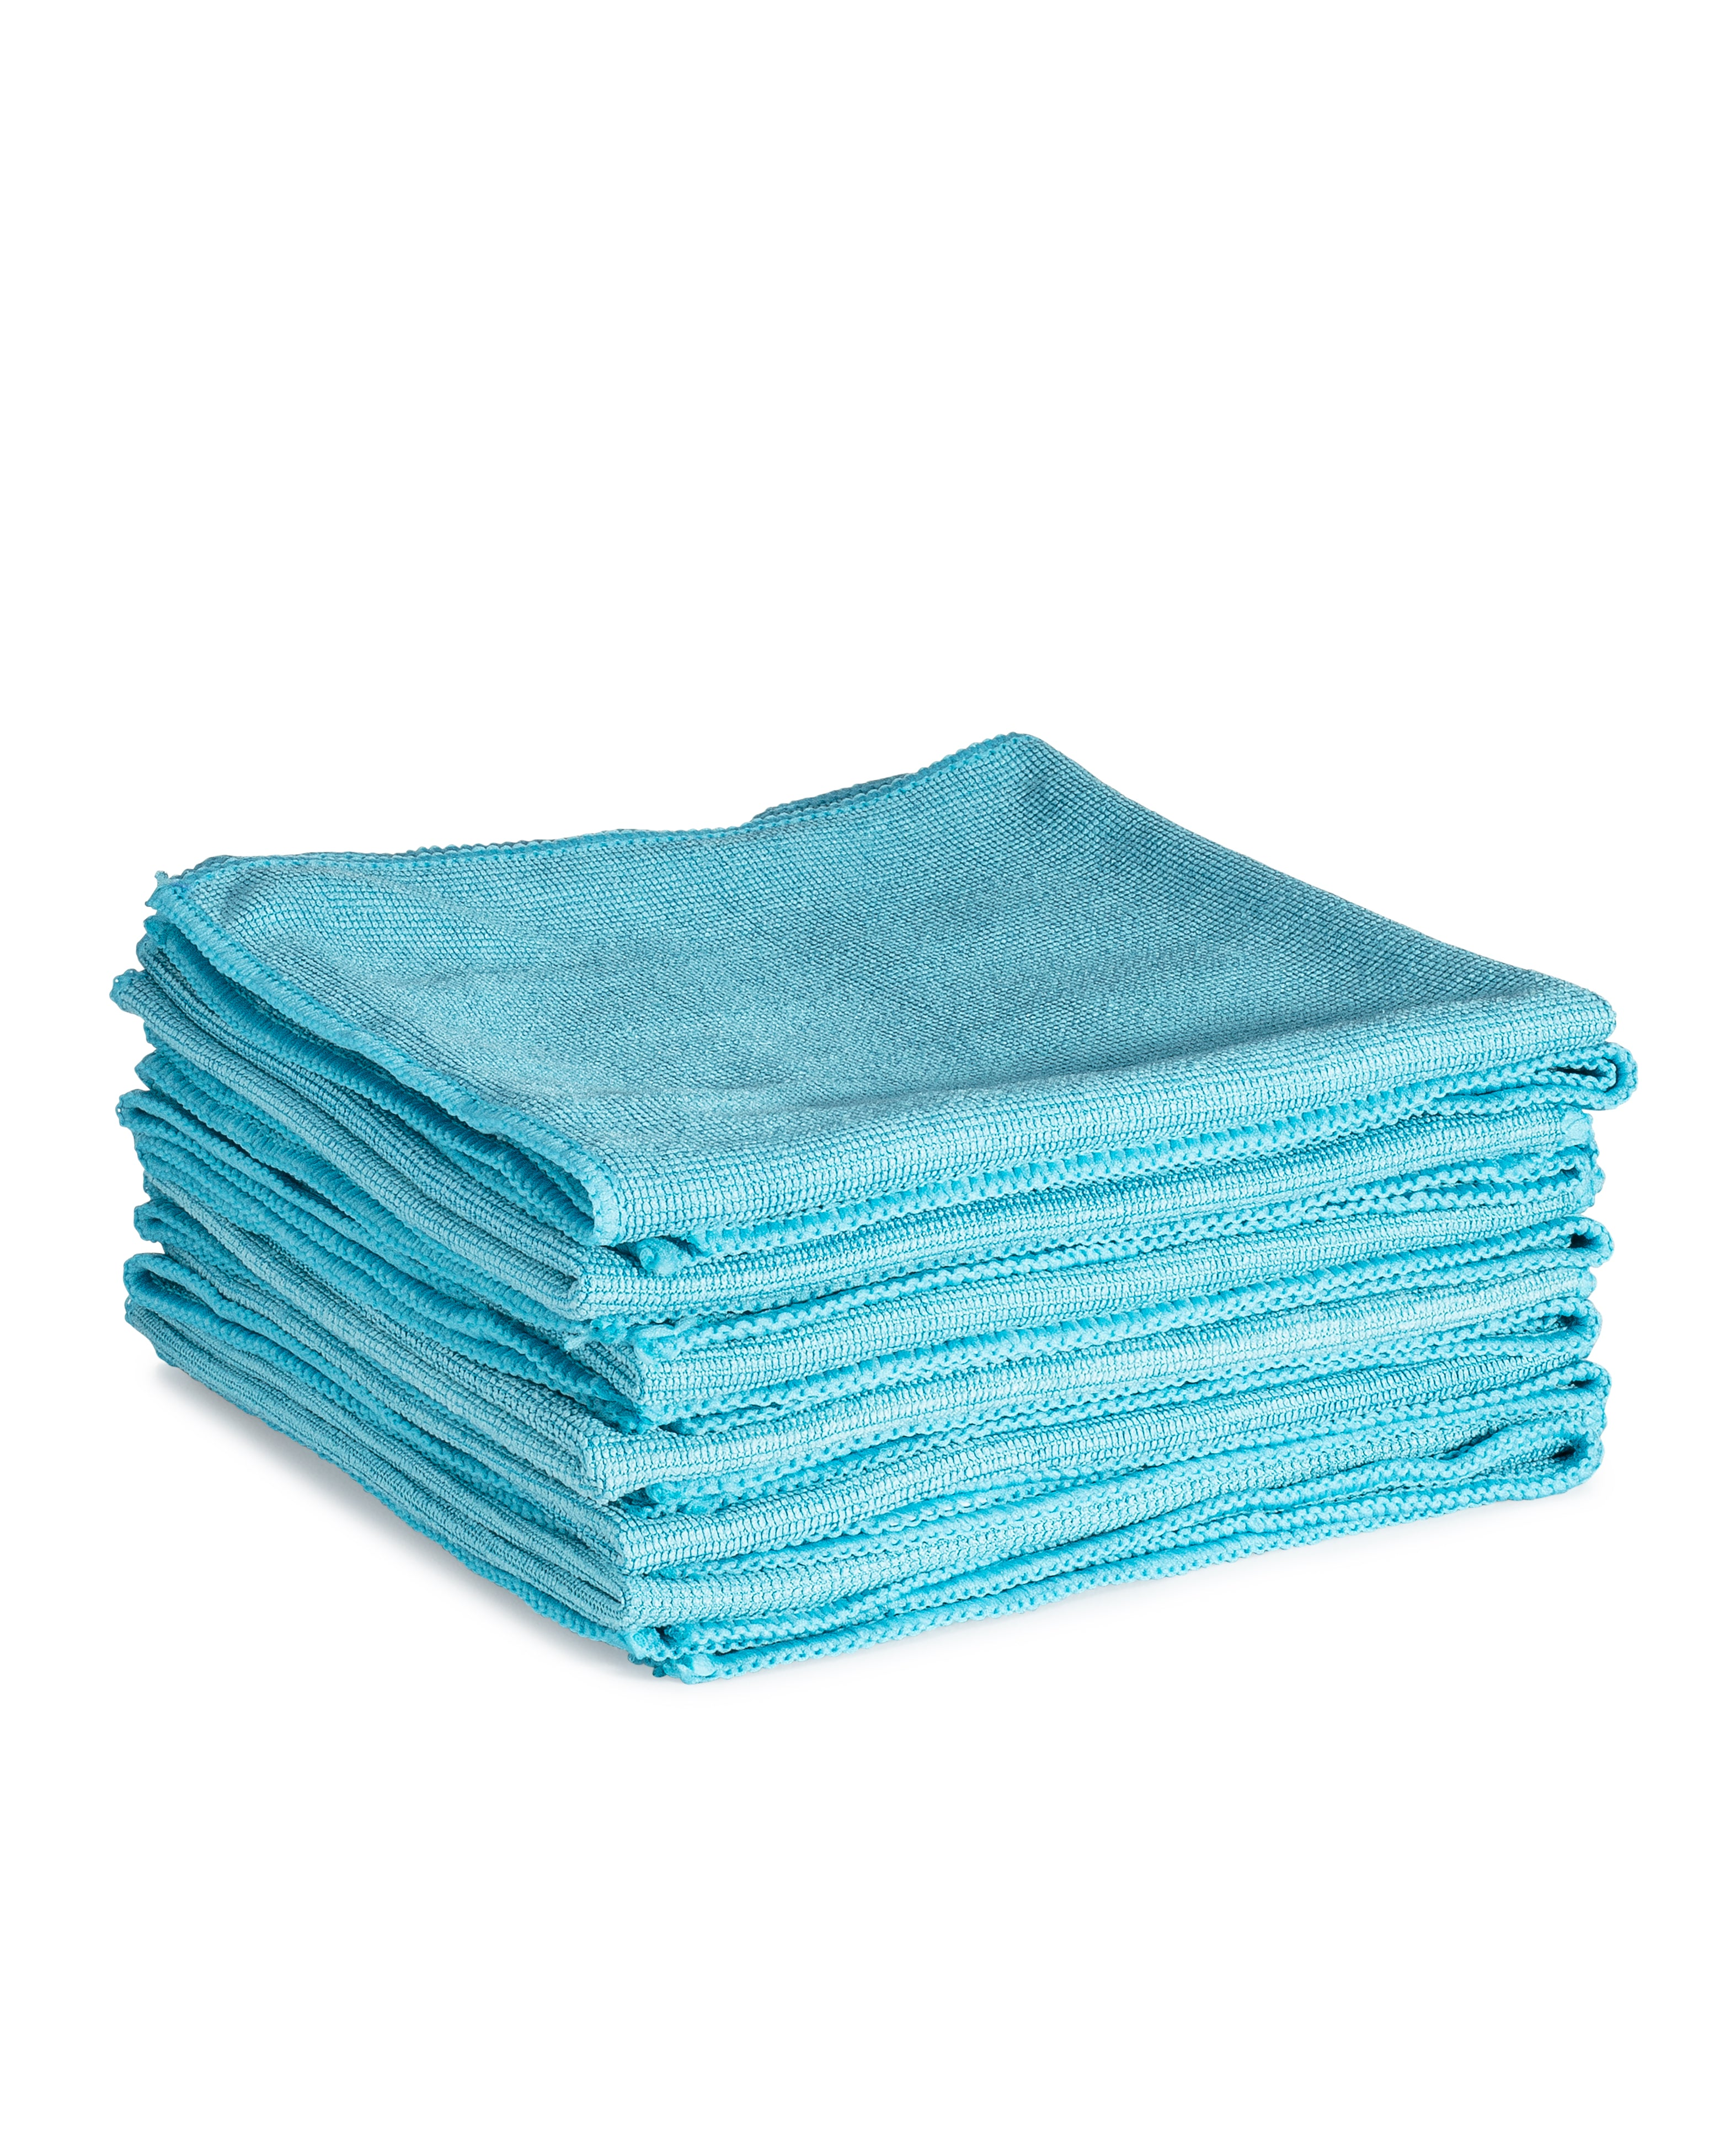 "Maxloop ""Glass"" Microfiber Towels"